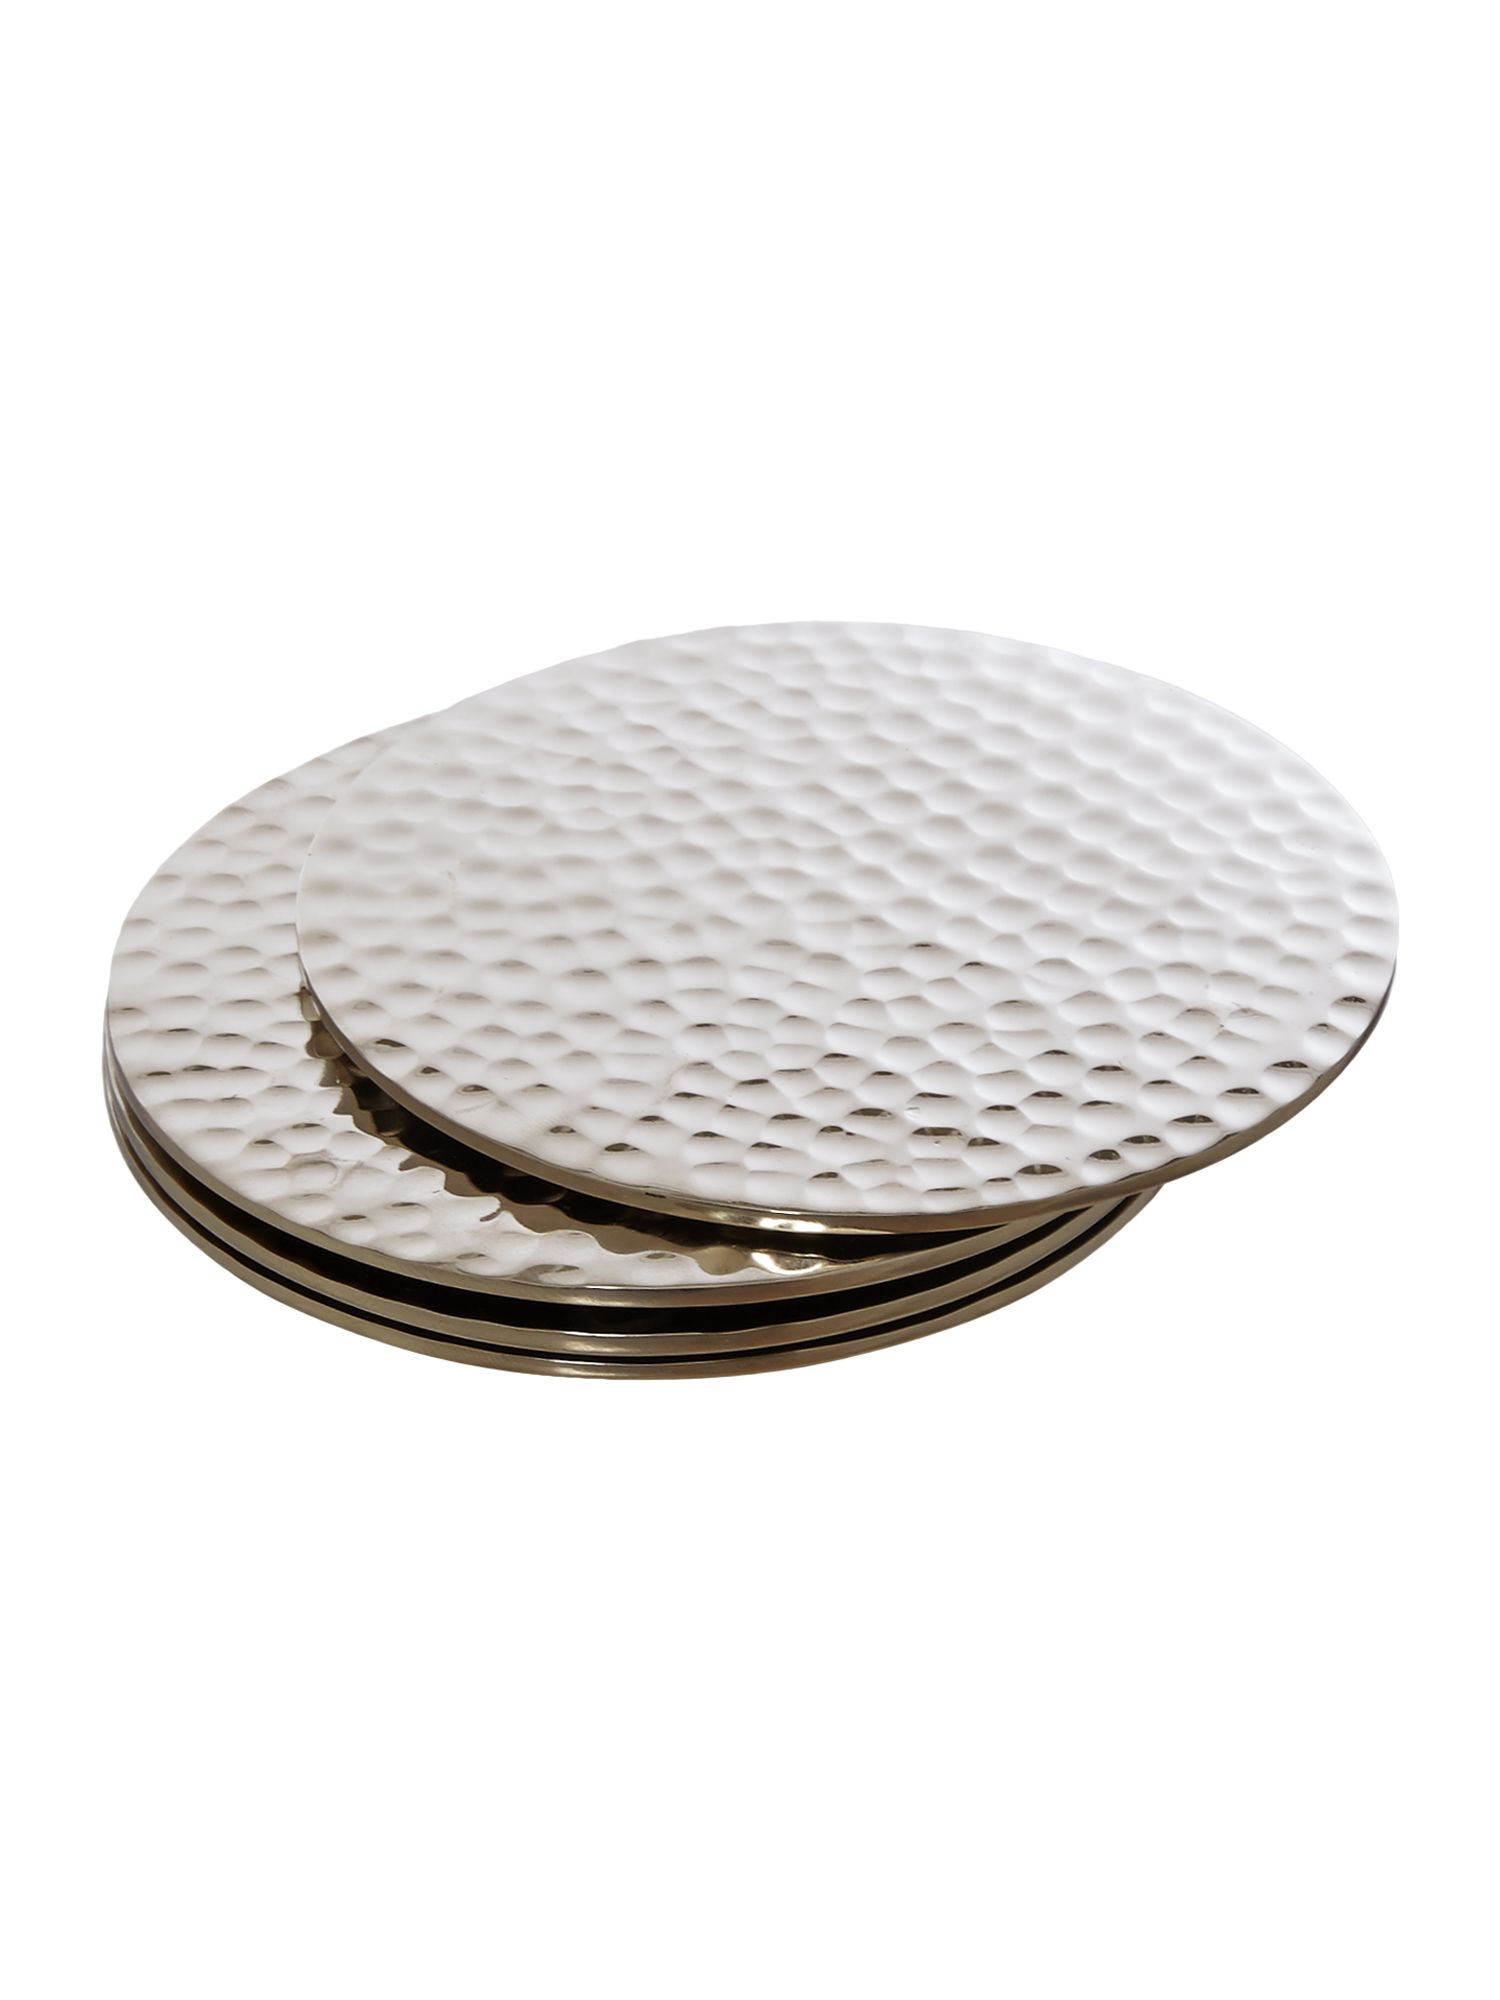 Image of Casa Couture Beaten Metal Coaster Set Of 4